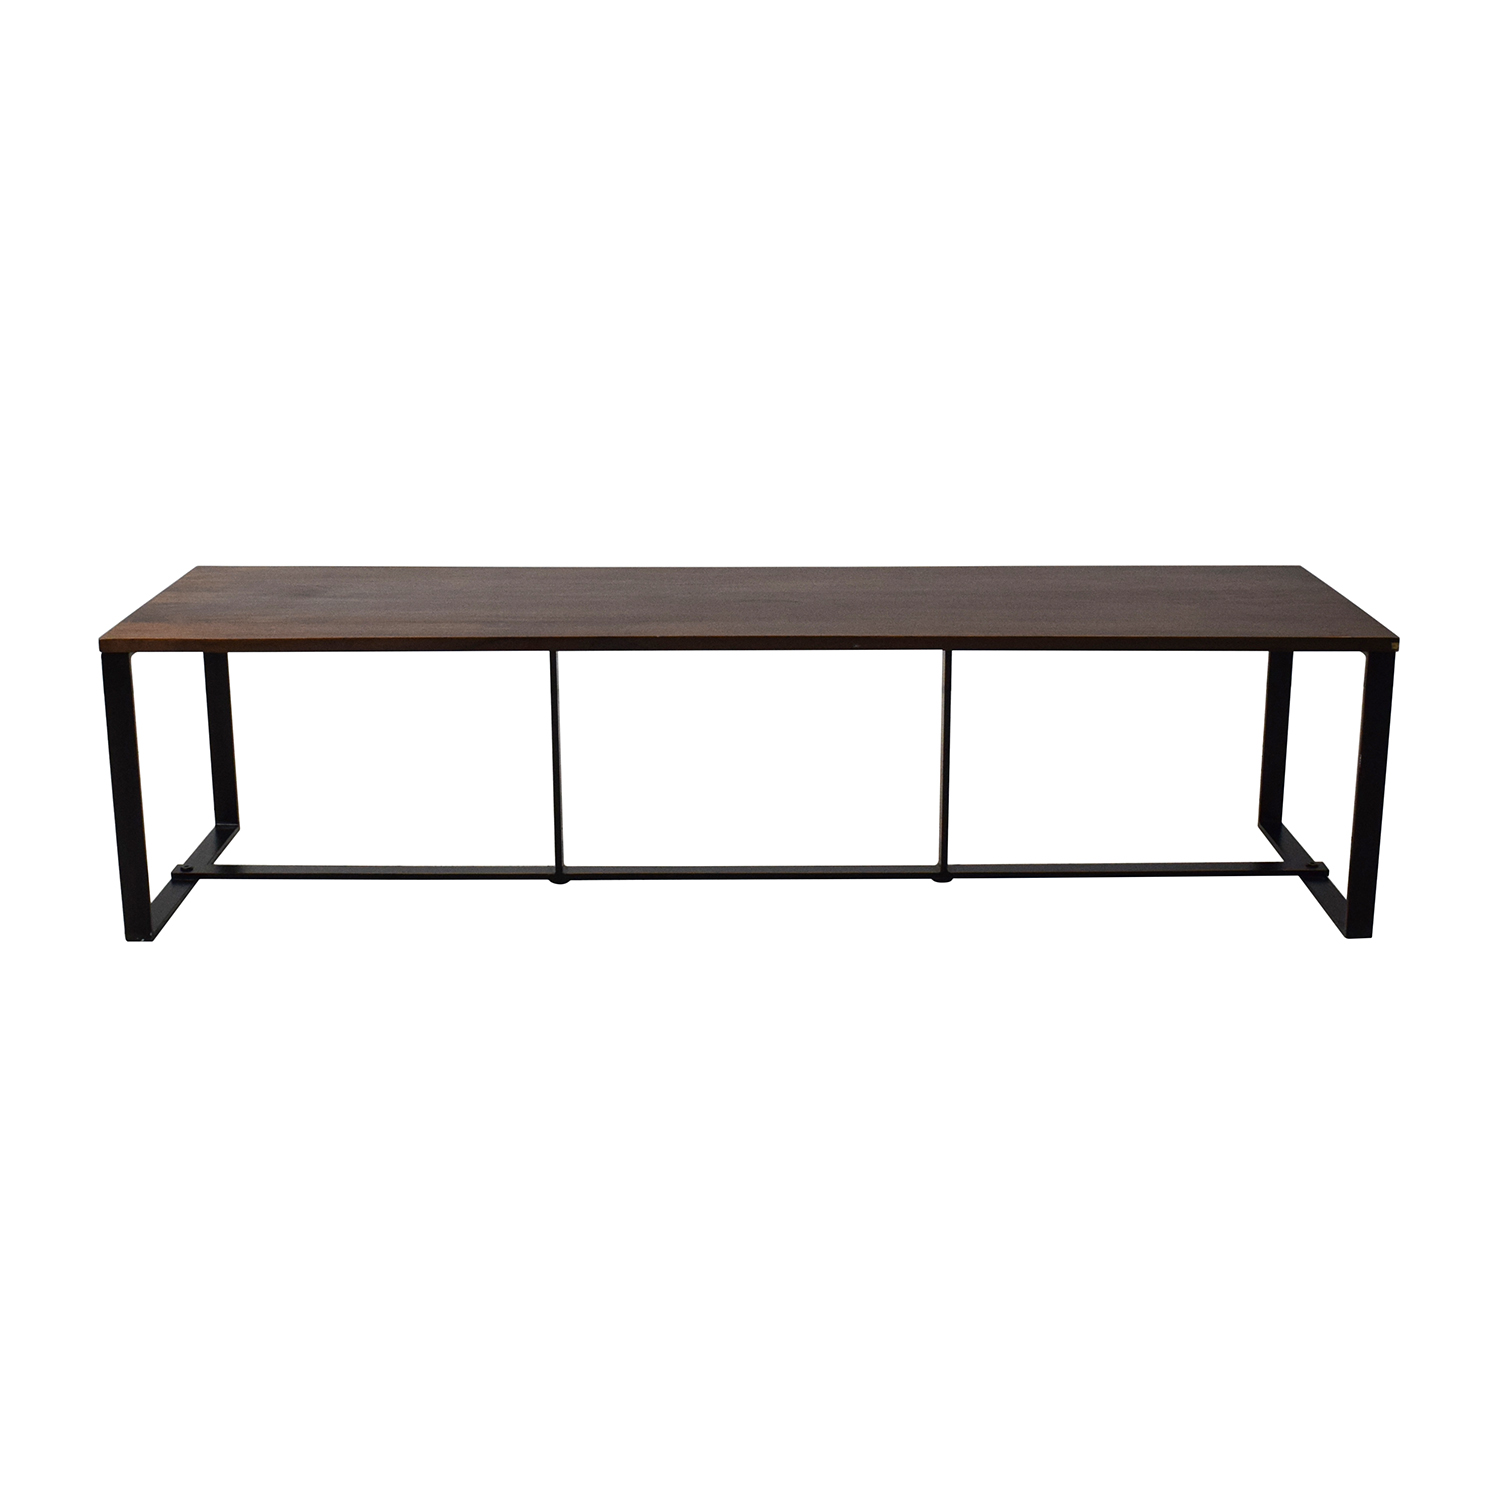 CB2 CB2 Coffee Table Tables